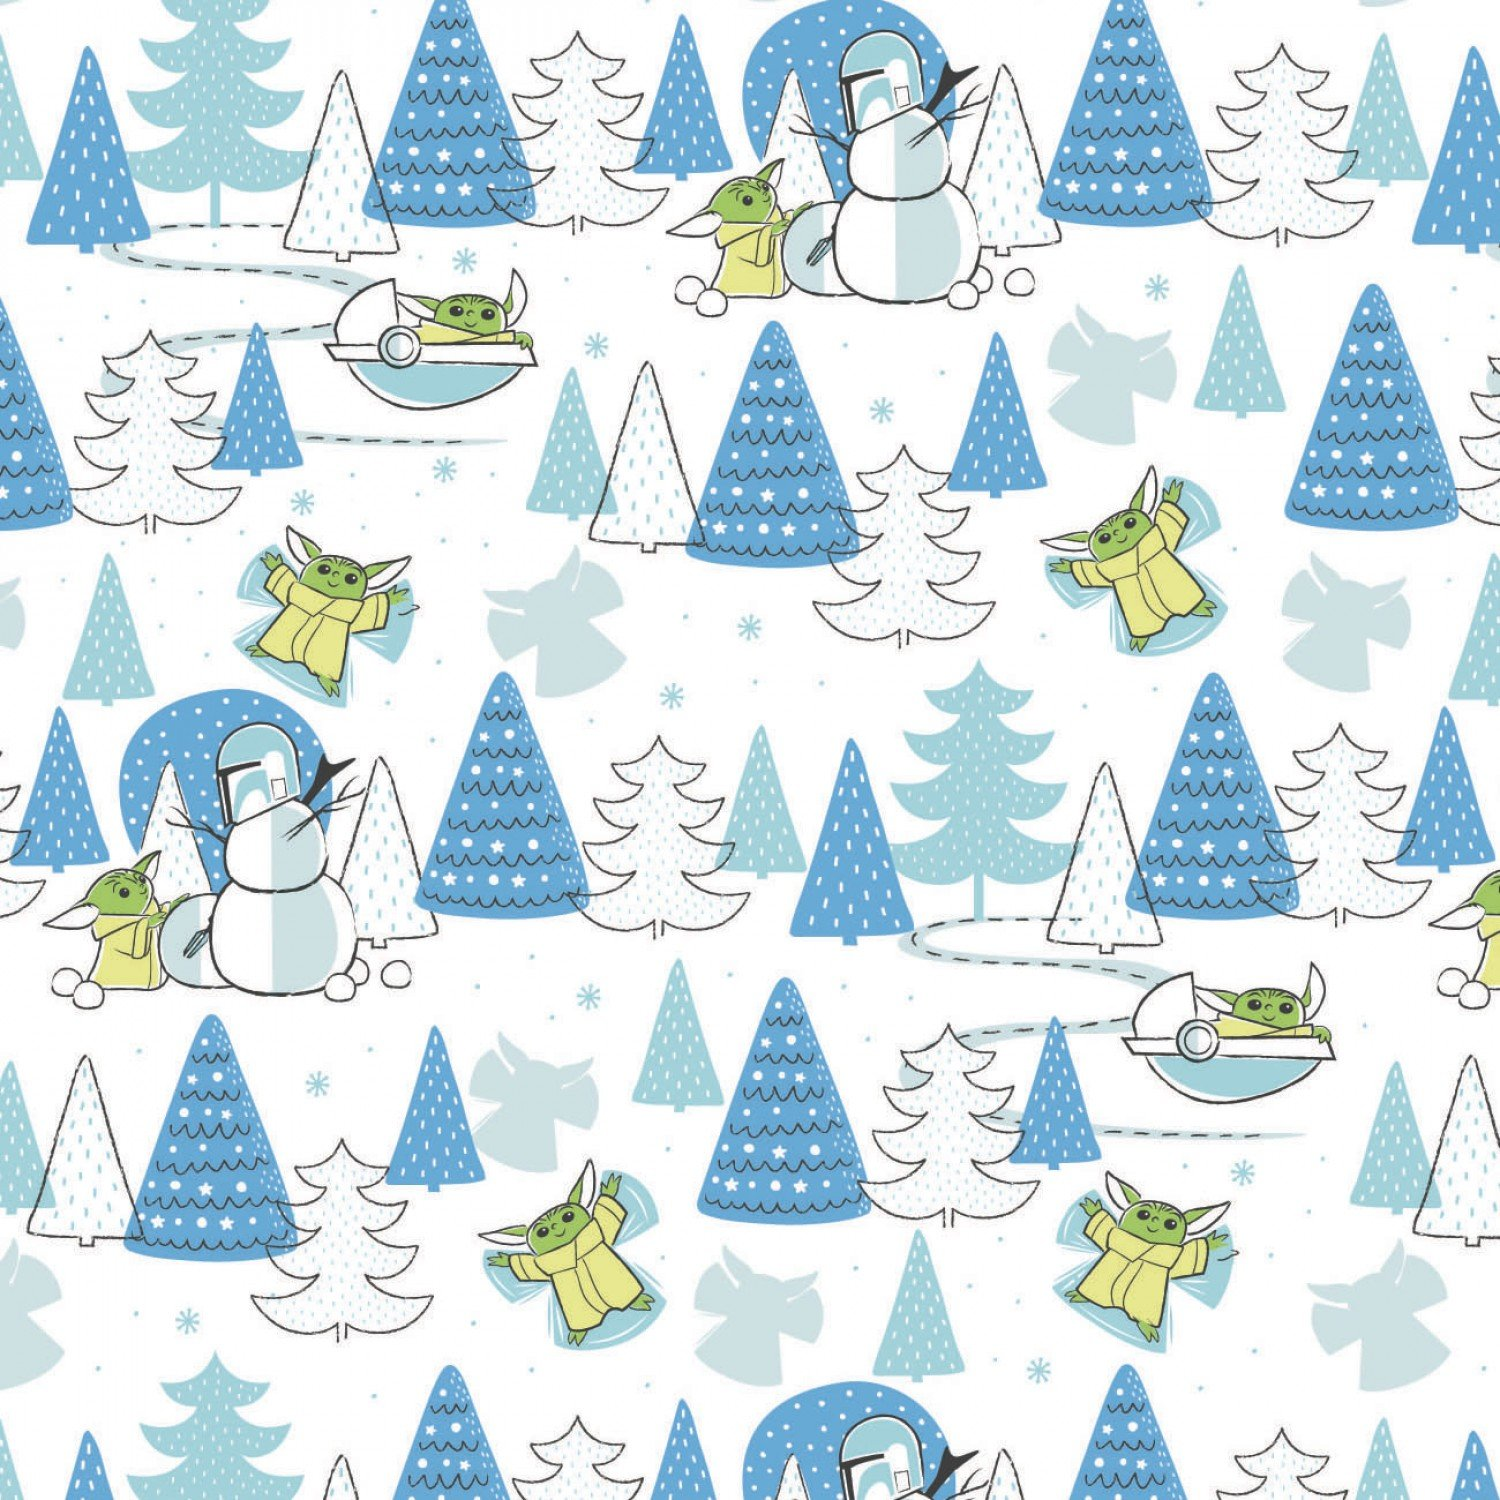 Character Winter Holiday 2  Star Wars Child Snow Day on White Fabric by the Yard